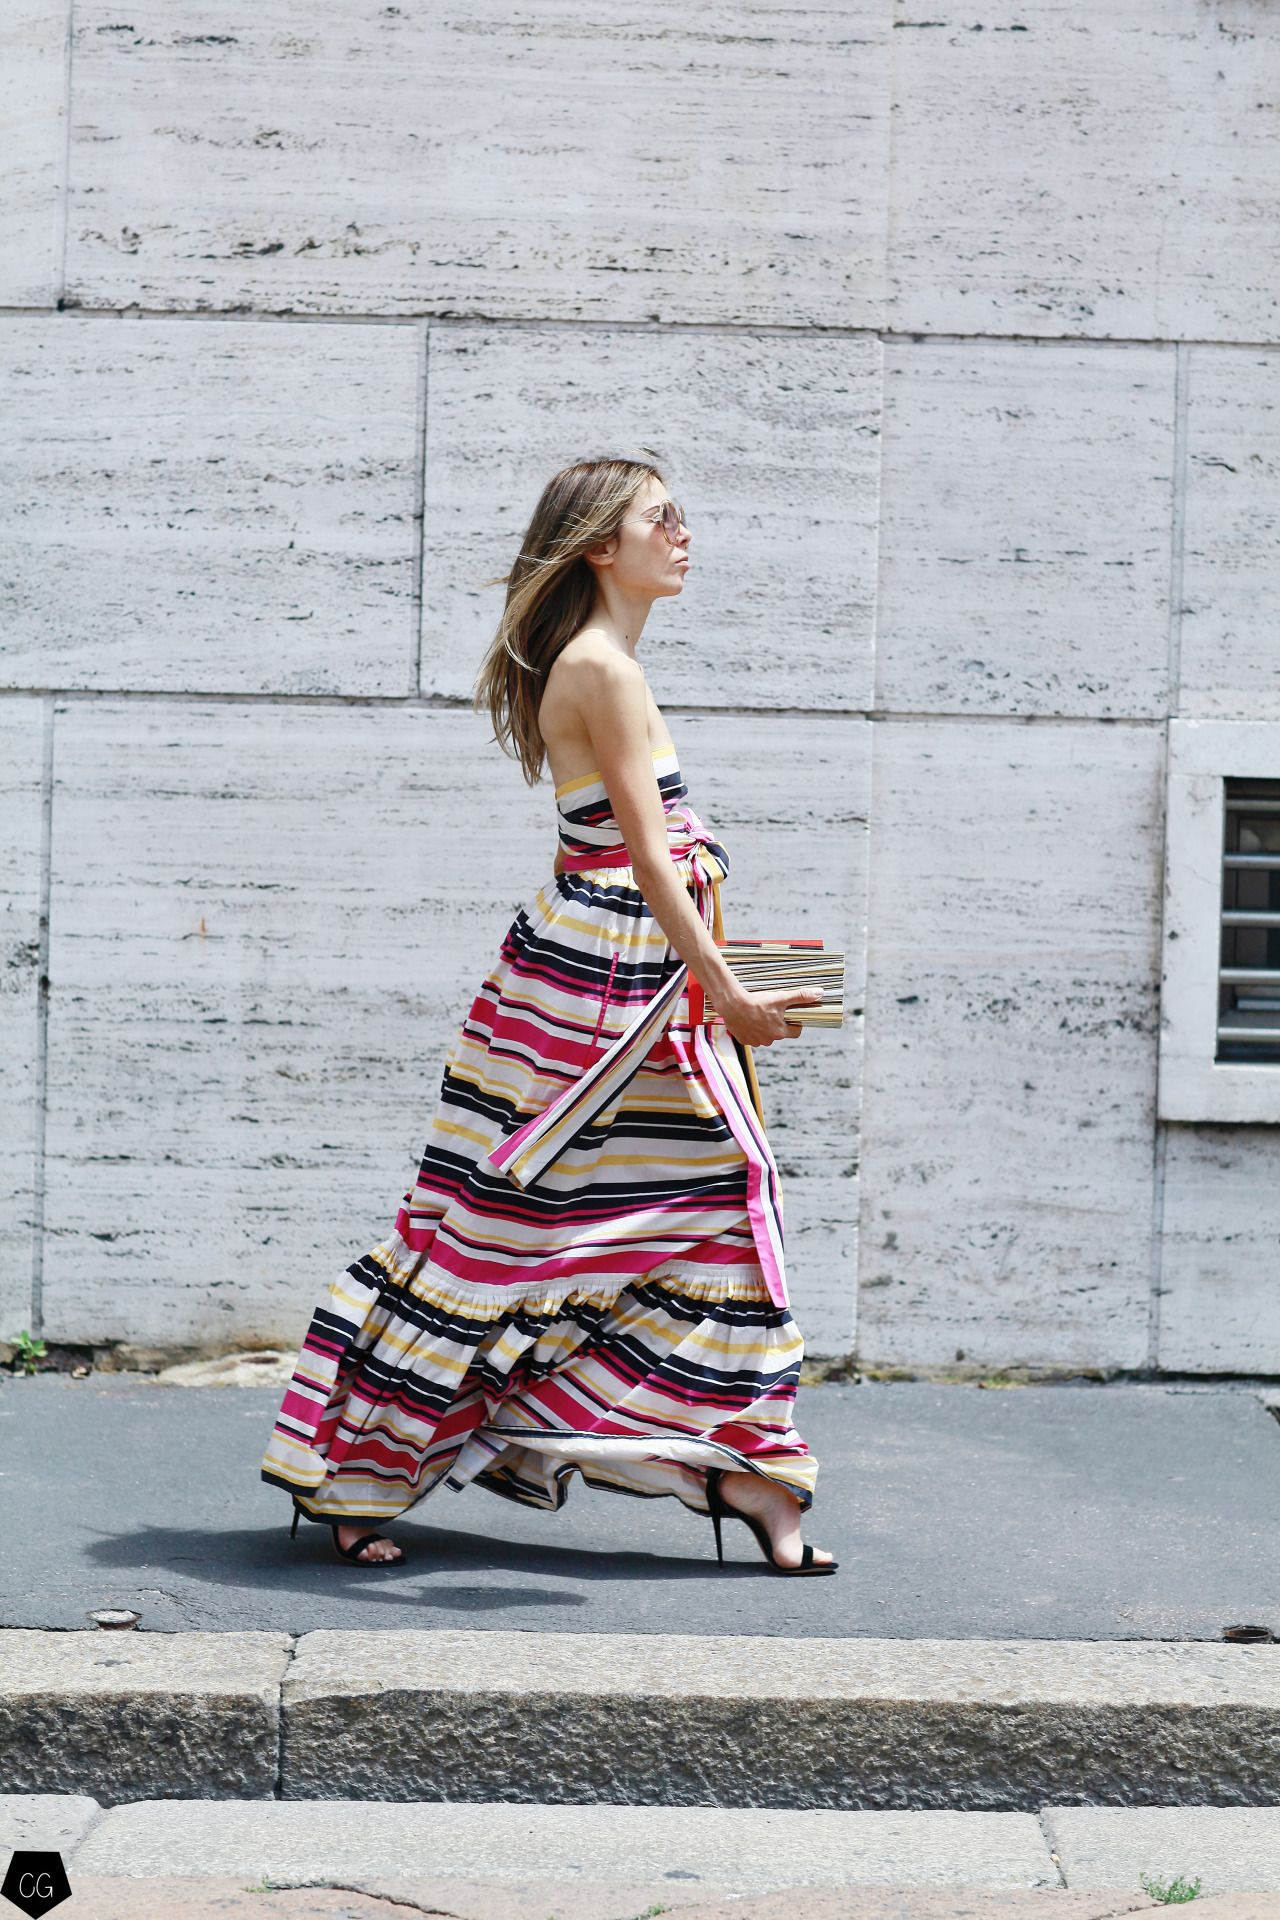 New post on detaile-d